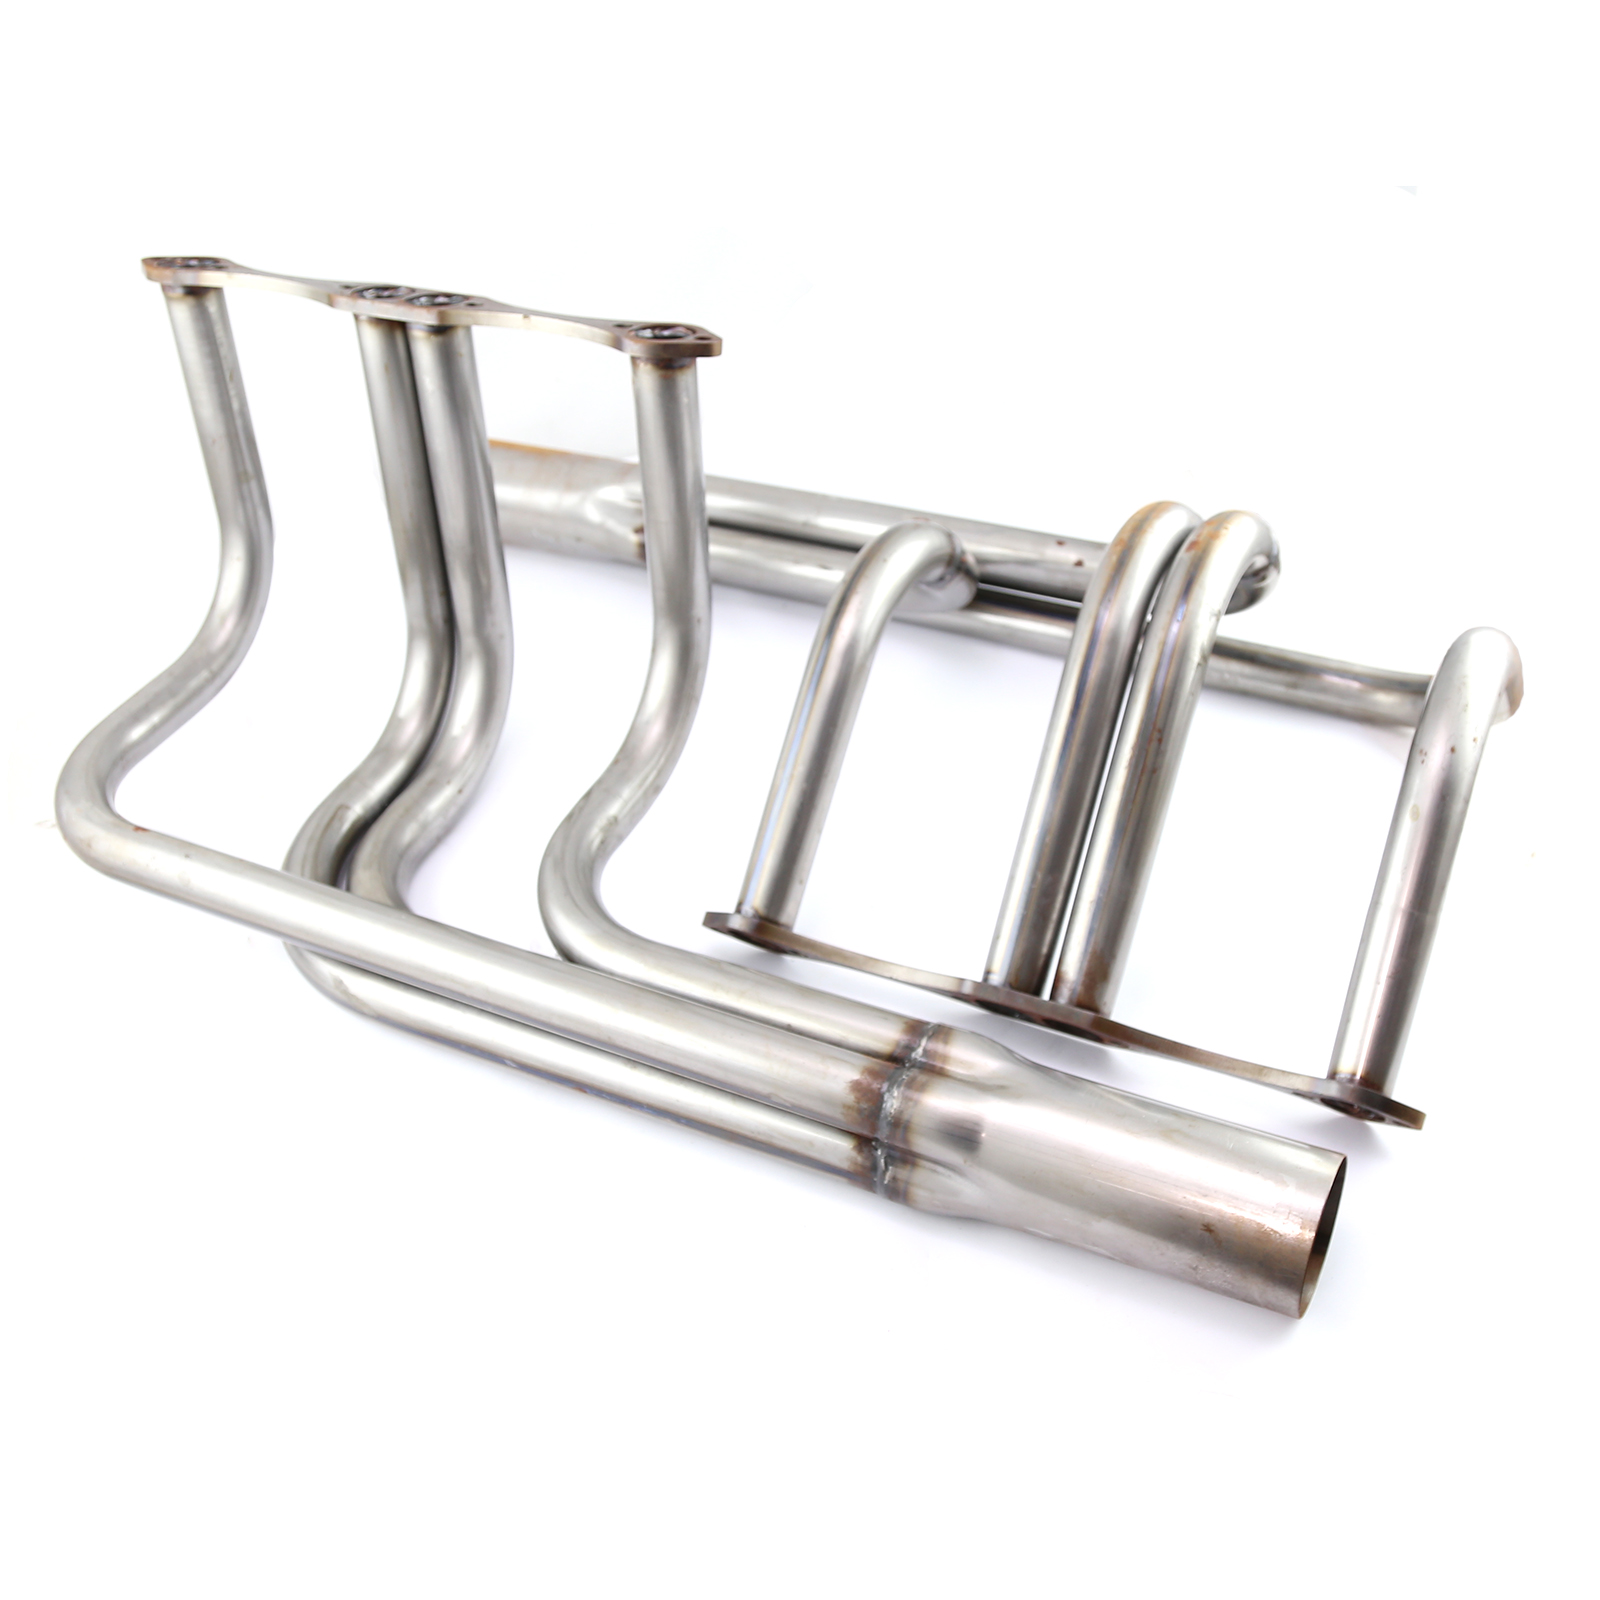 Chevy Sbc 350 Classic T Bucket Street Rod Raw Steel Exhaust Headers